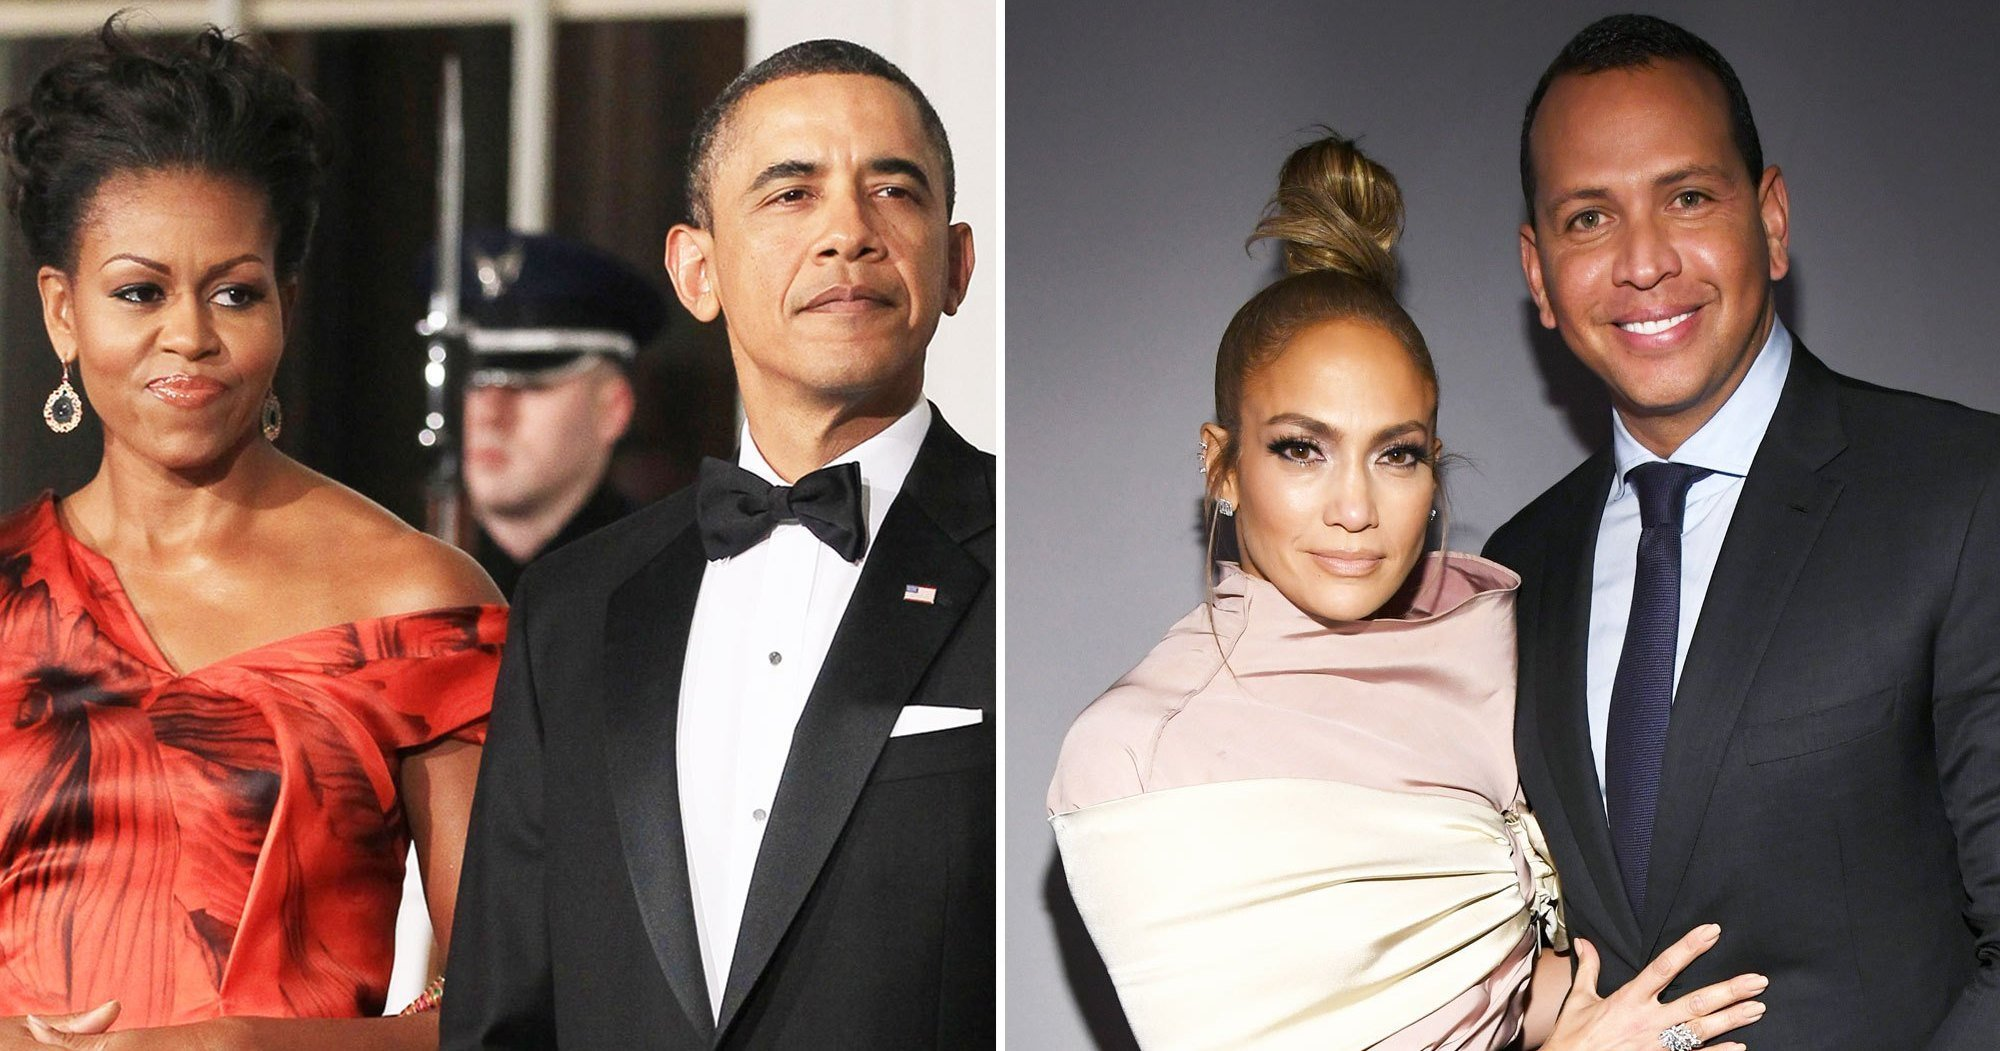 See the Obamas' Handwritten Note to Newly Engaged J. Lo and A-Rod